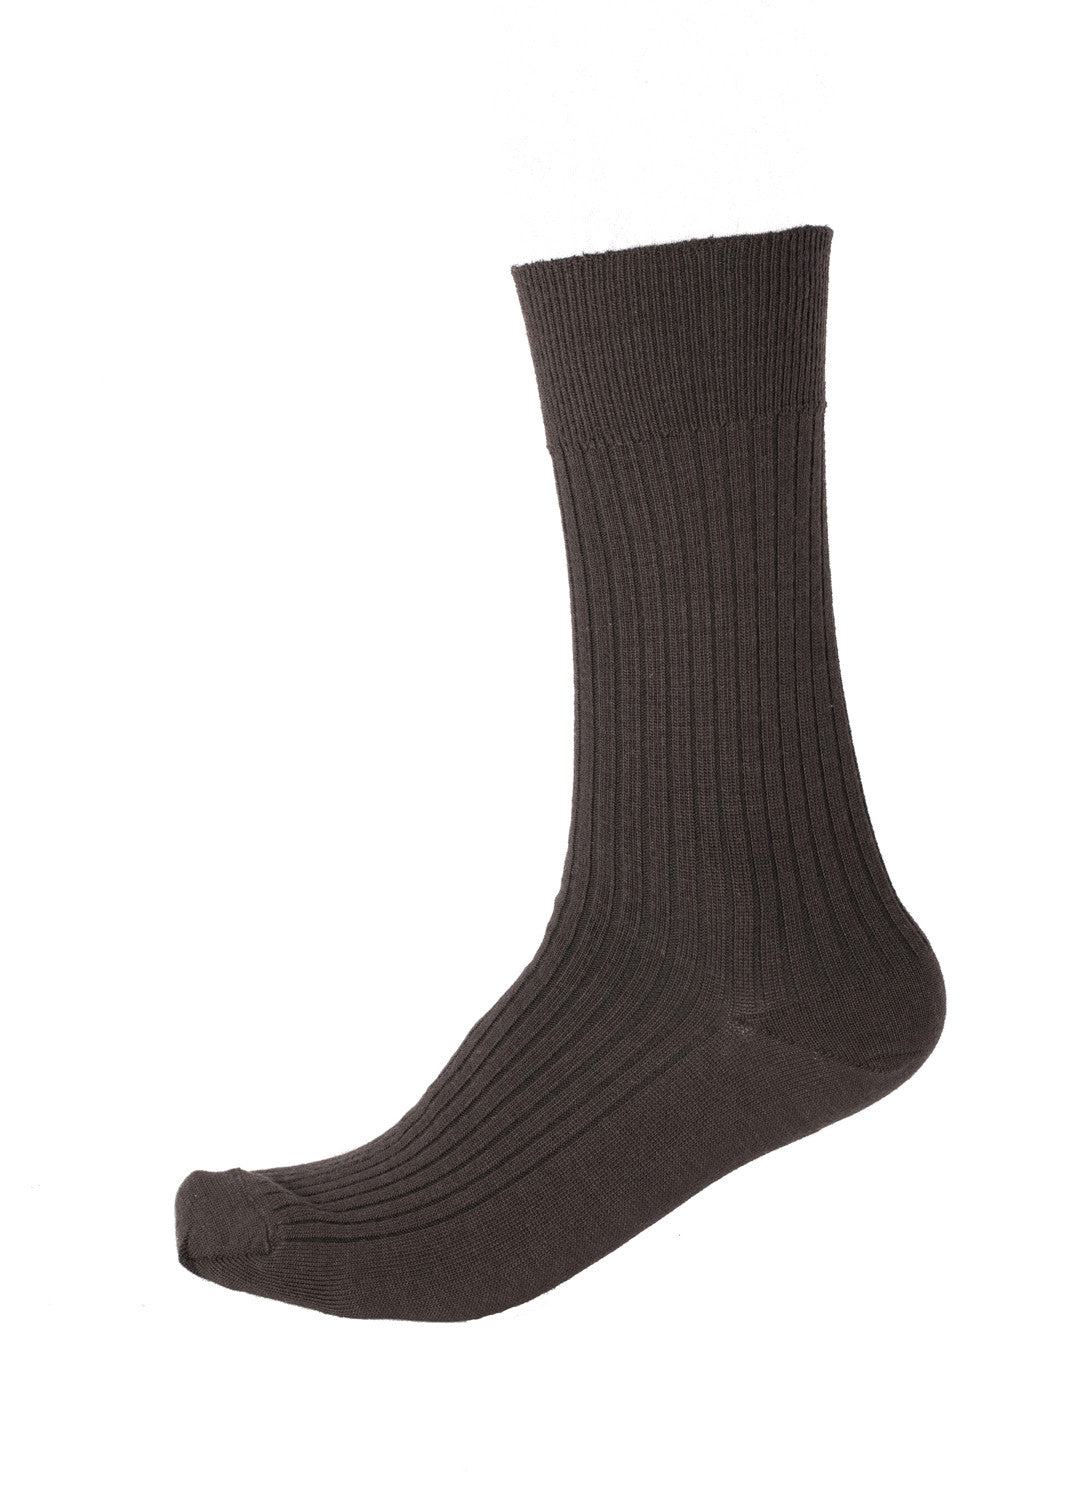 Pussyfoot Wool Non-Elastic Health Socks - Brown